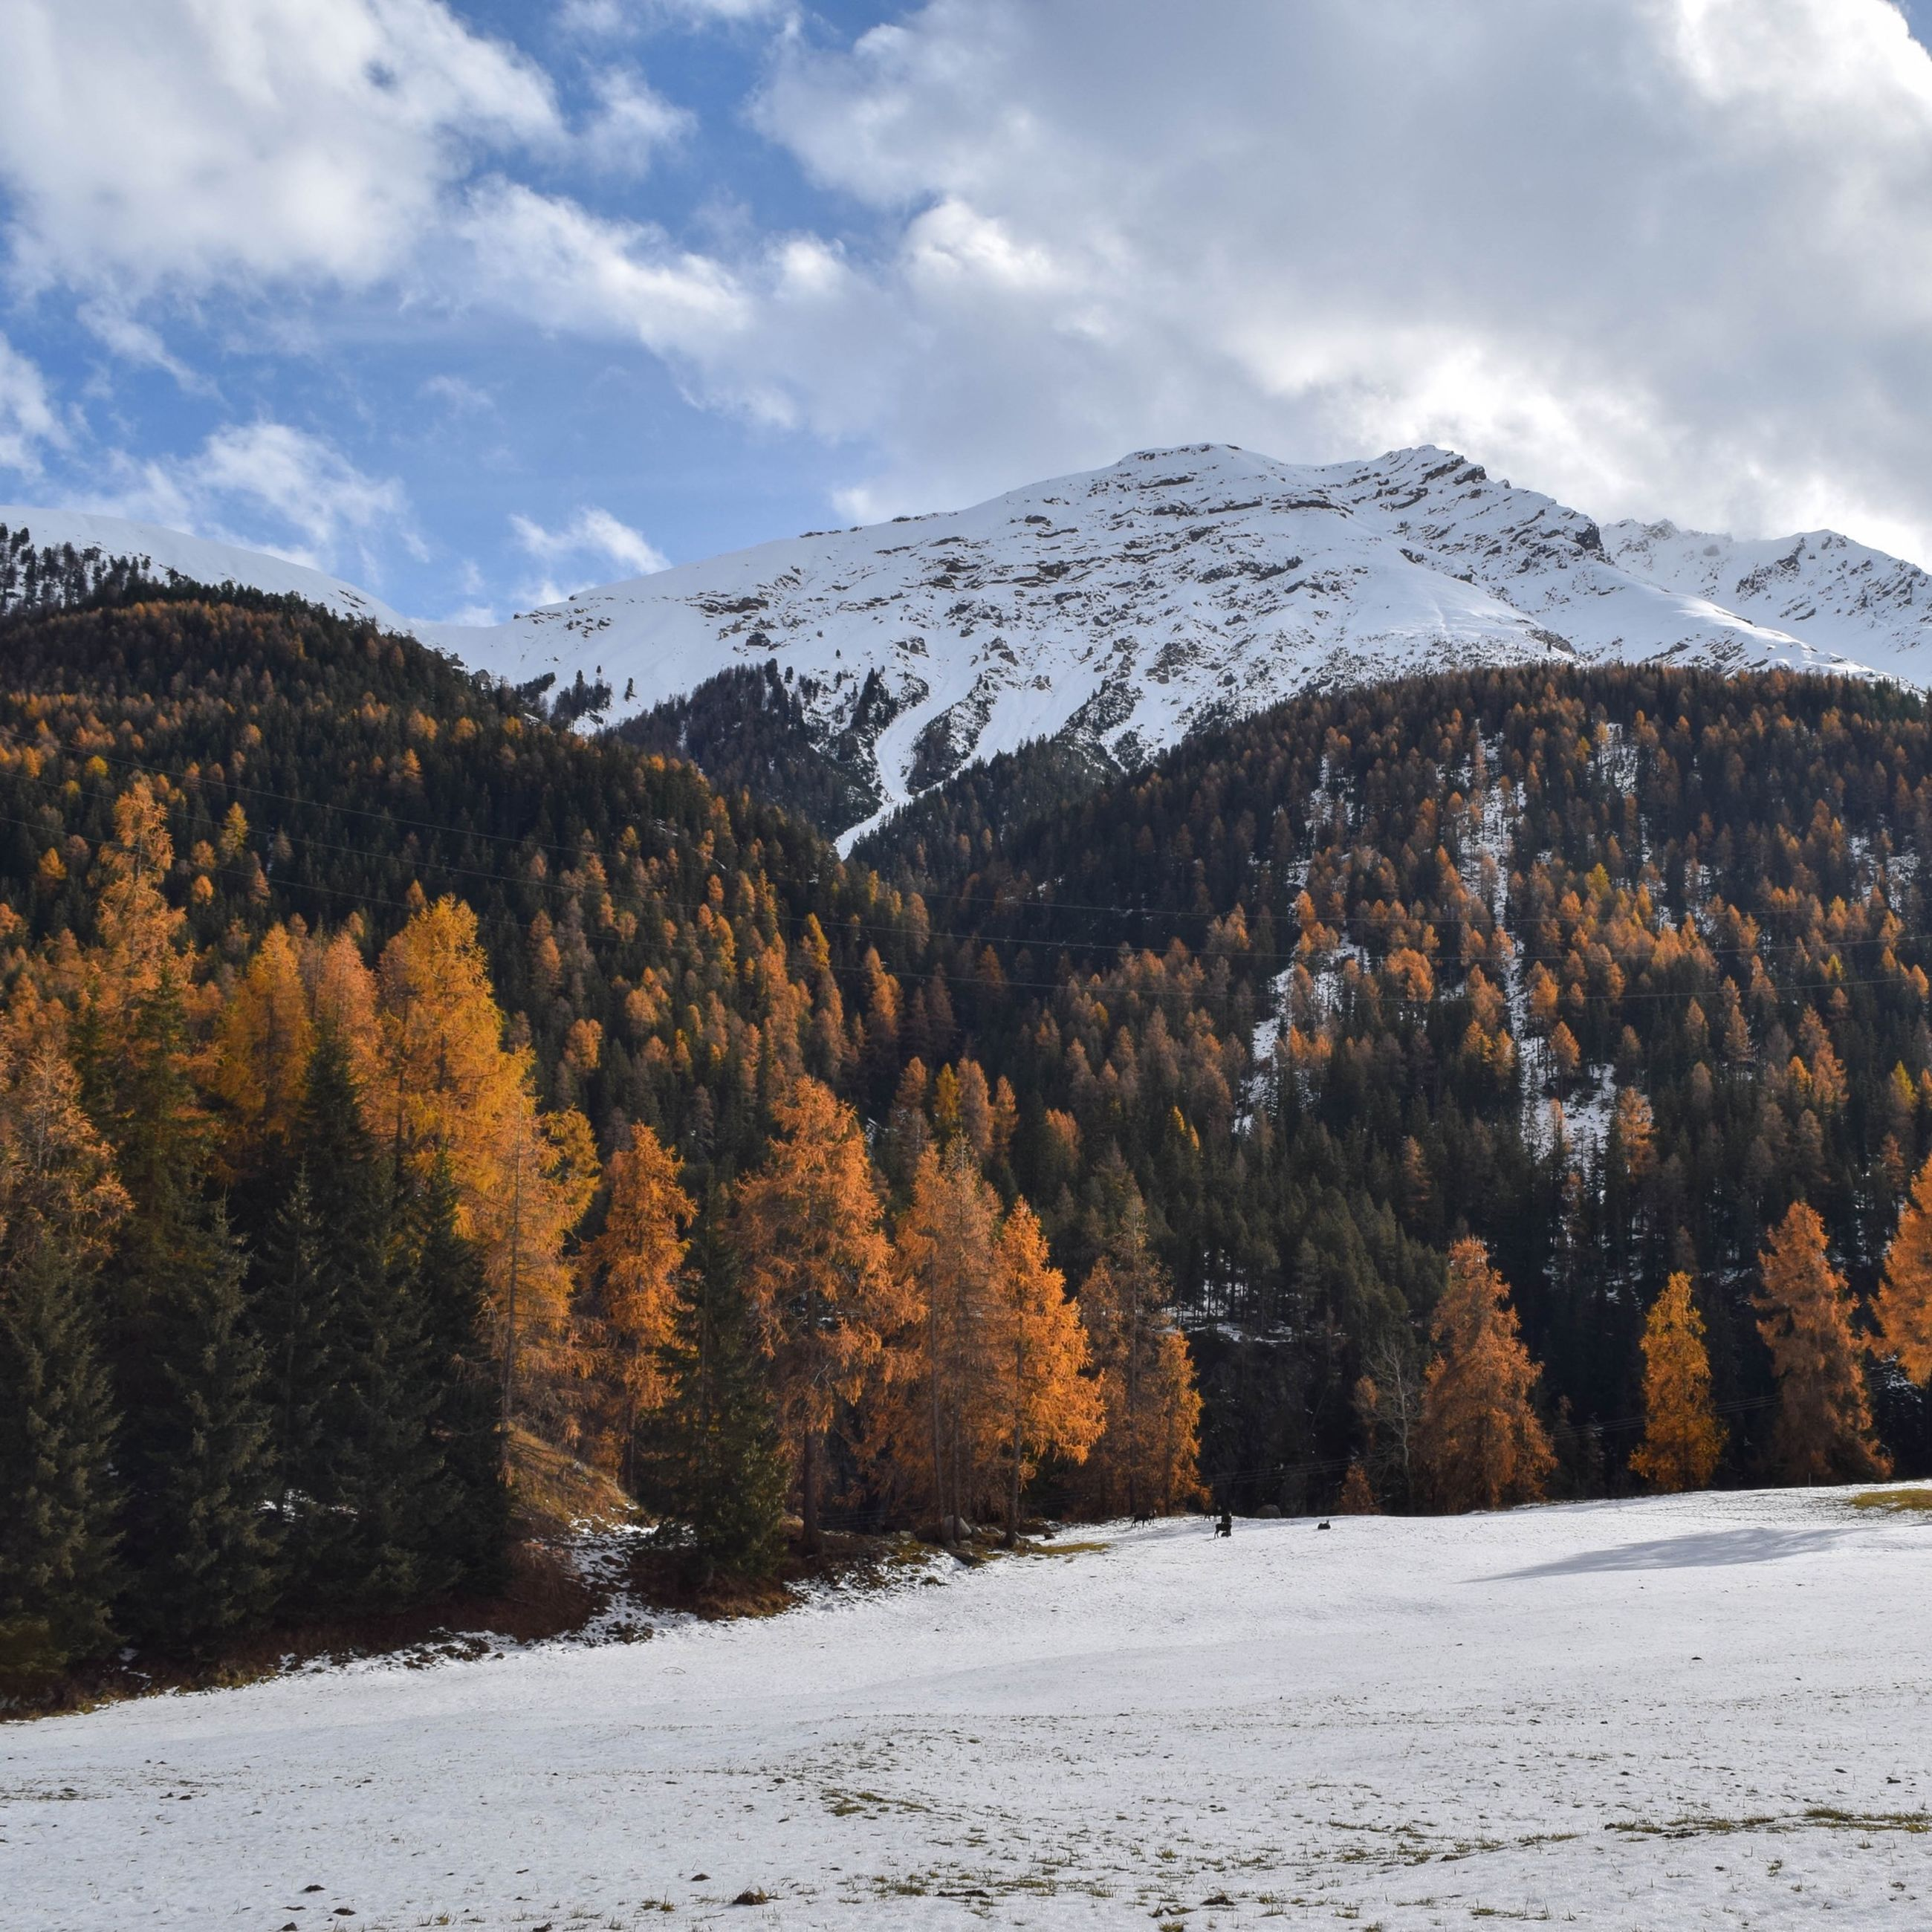 snow, winter, cold temperature, season, mountain, sky, tranquil scene, tranquility, weather, scenics, beauty in nature, tree, covering, landscape, nature, snowcapped mountain, cloud - sky, mountain range, non-urban scene, cloud